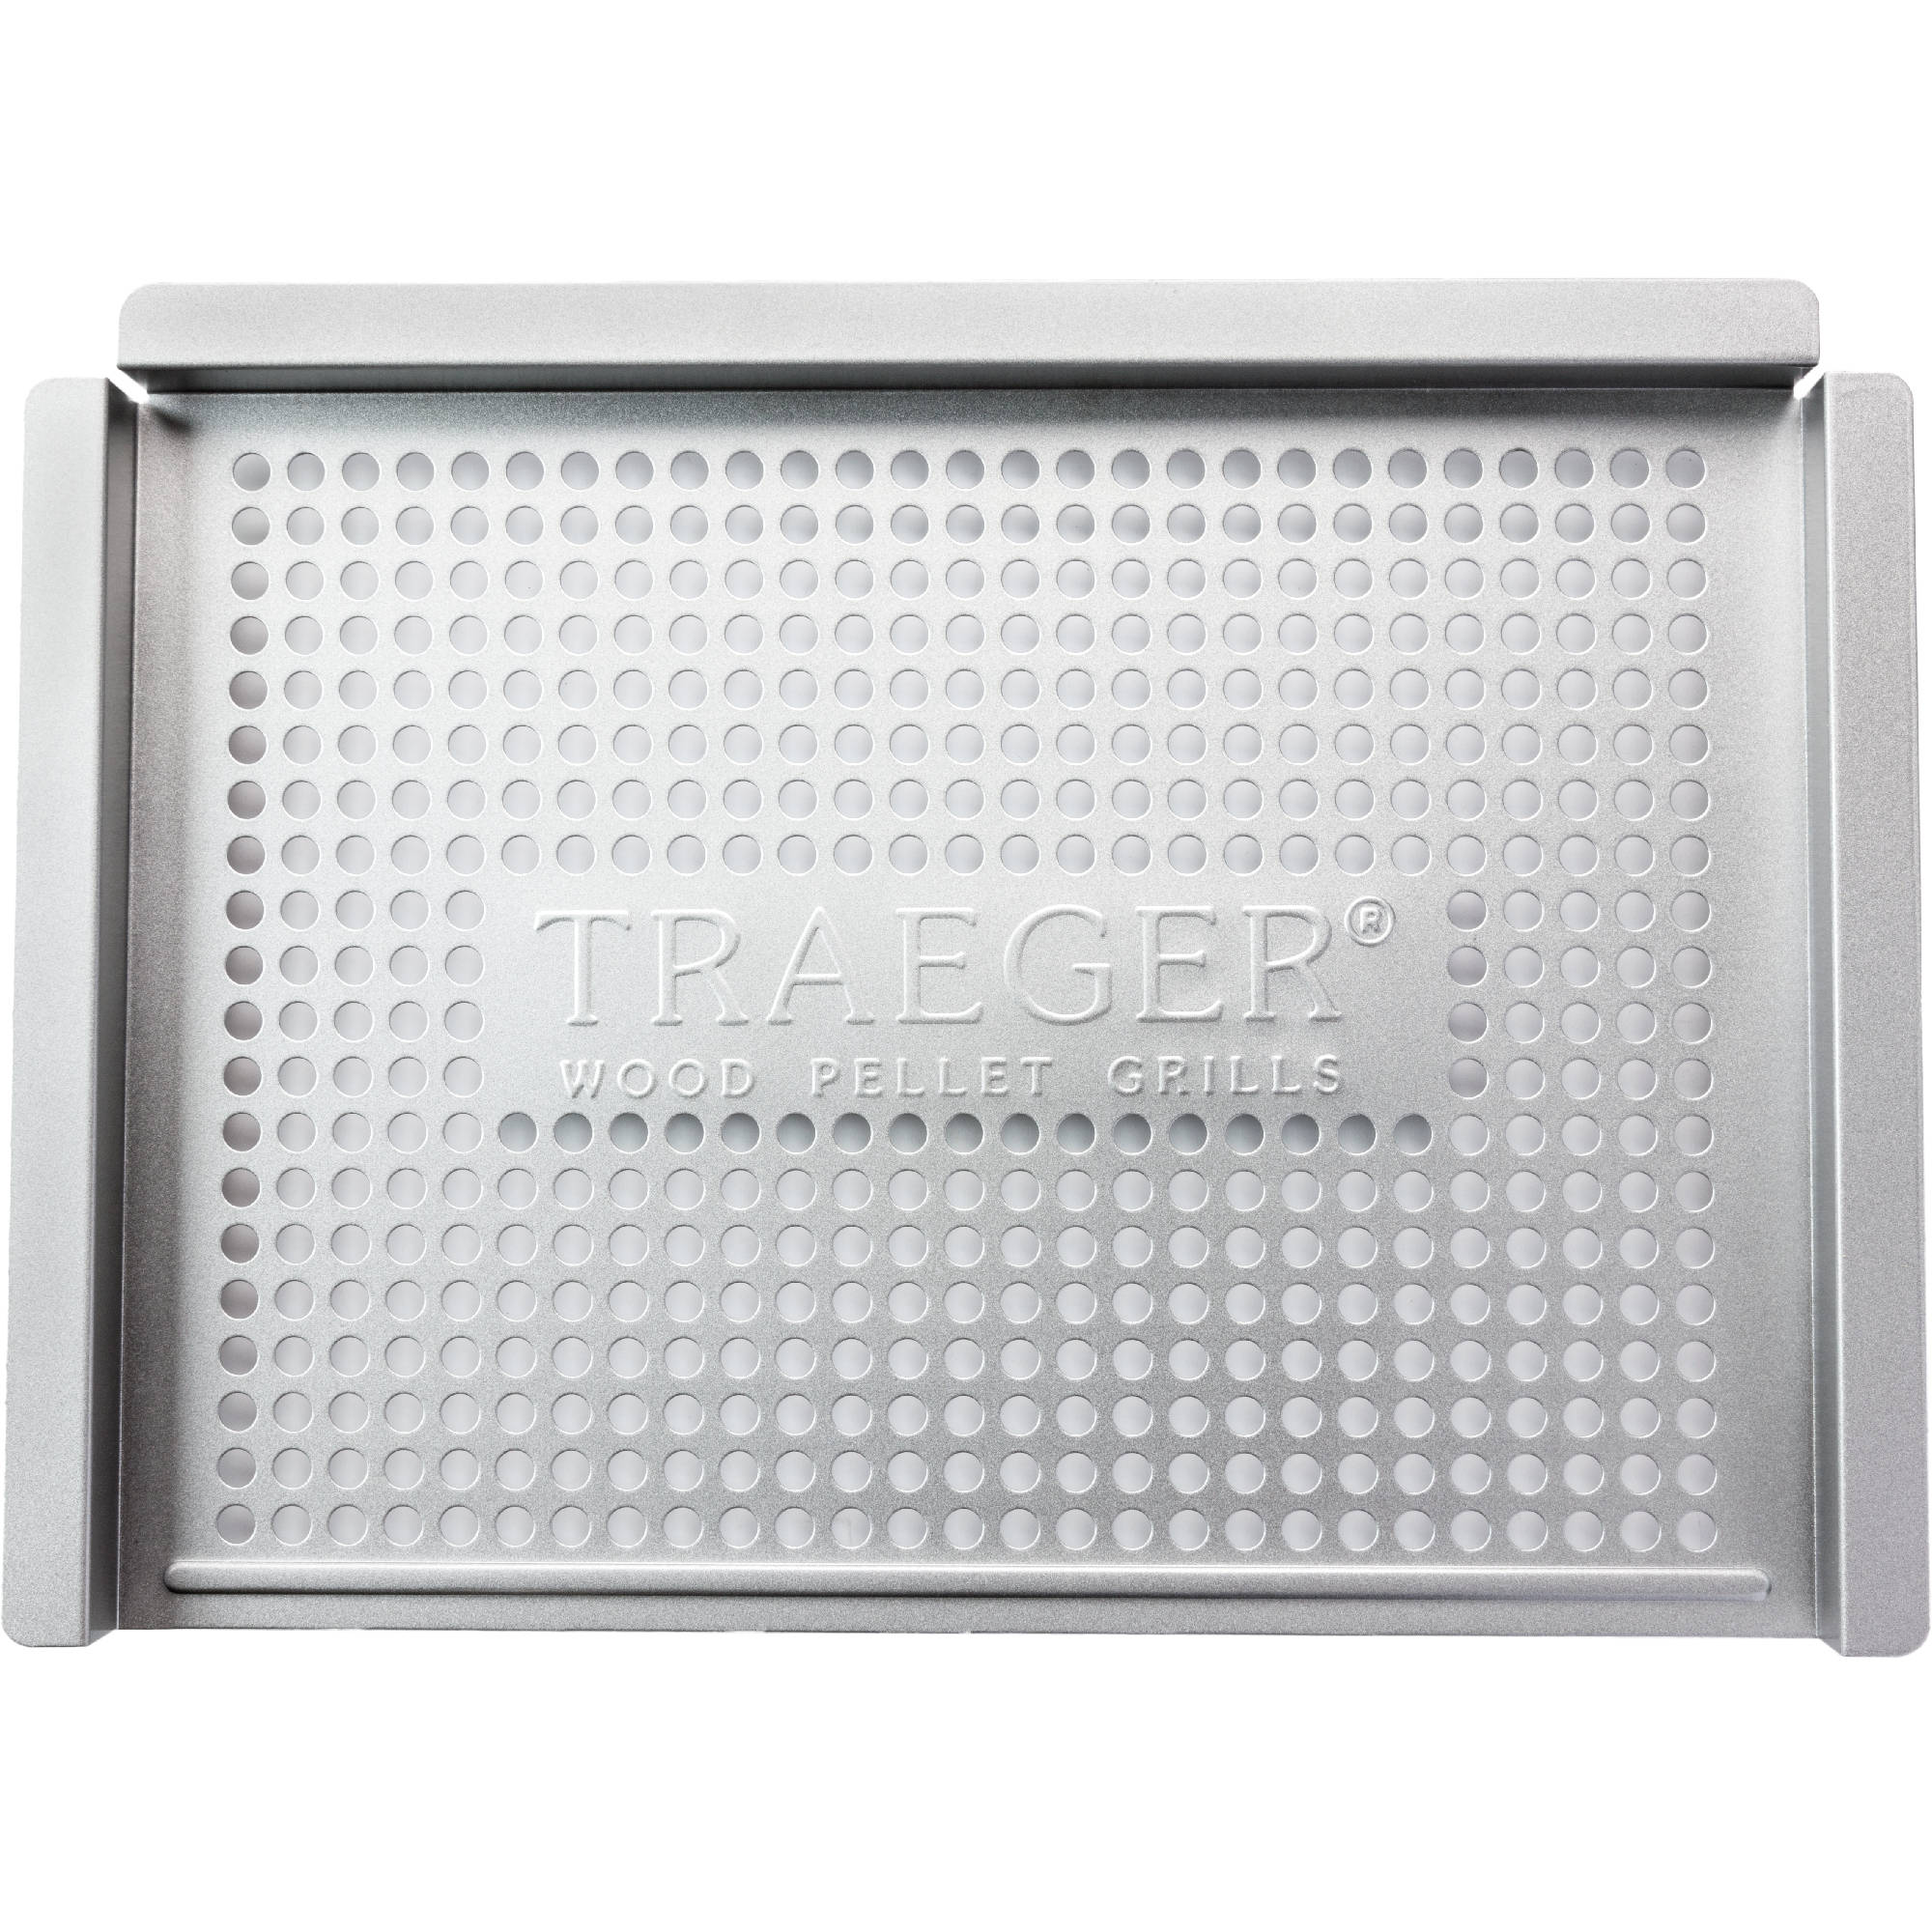 An image of Traeger Cooking Accessories - Stainless Grill Basket